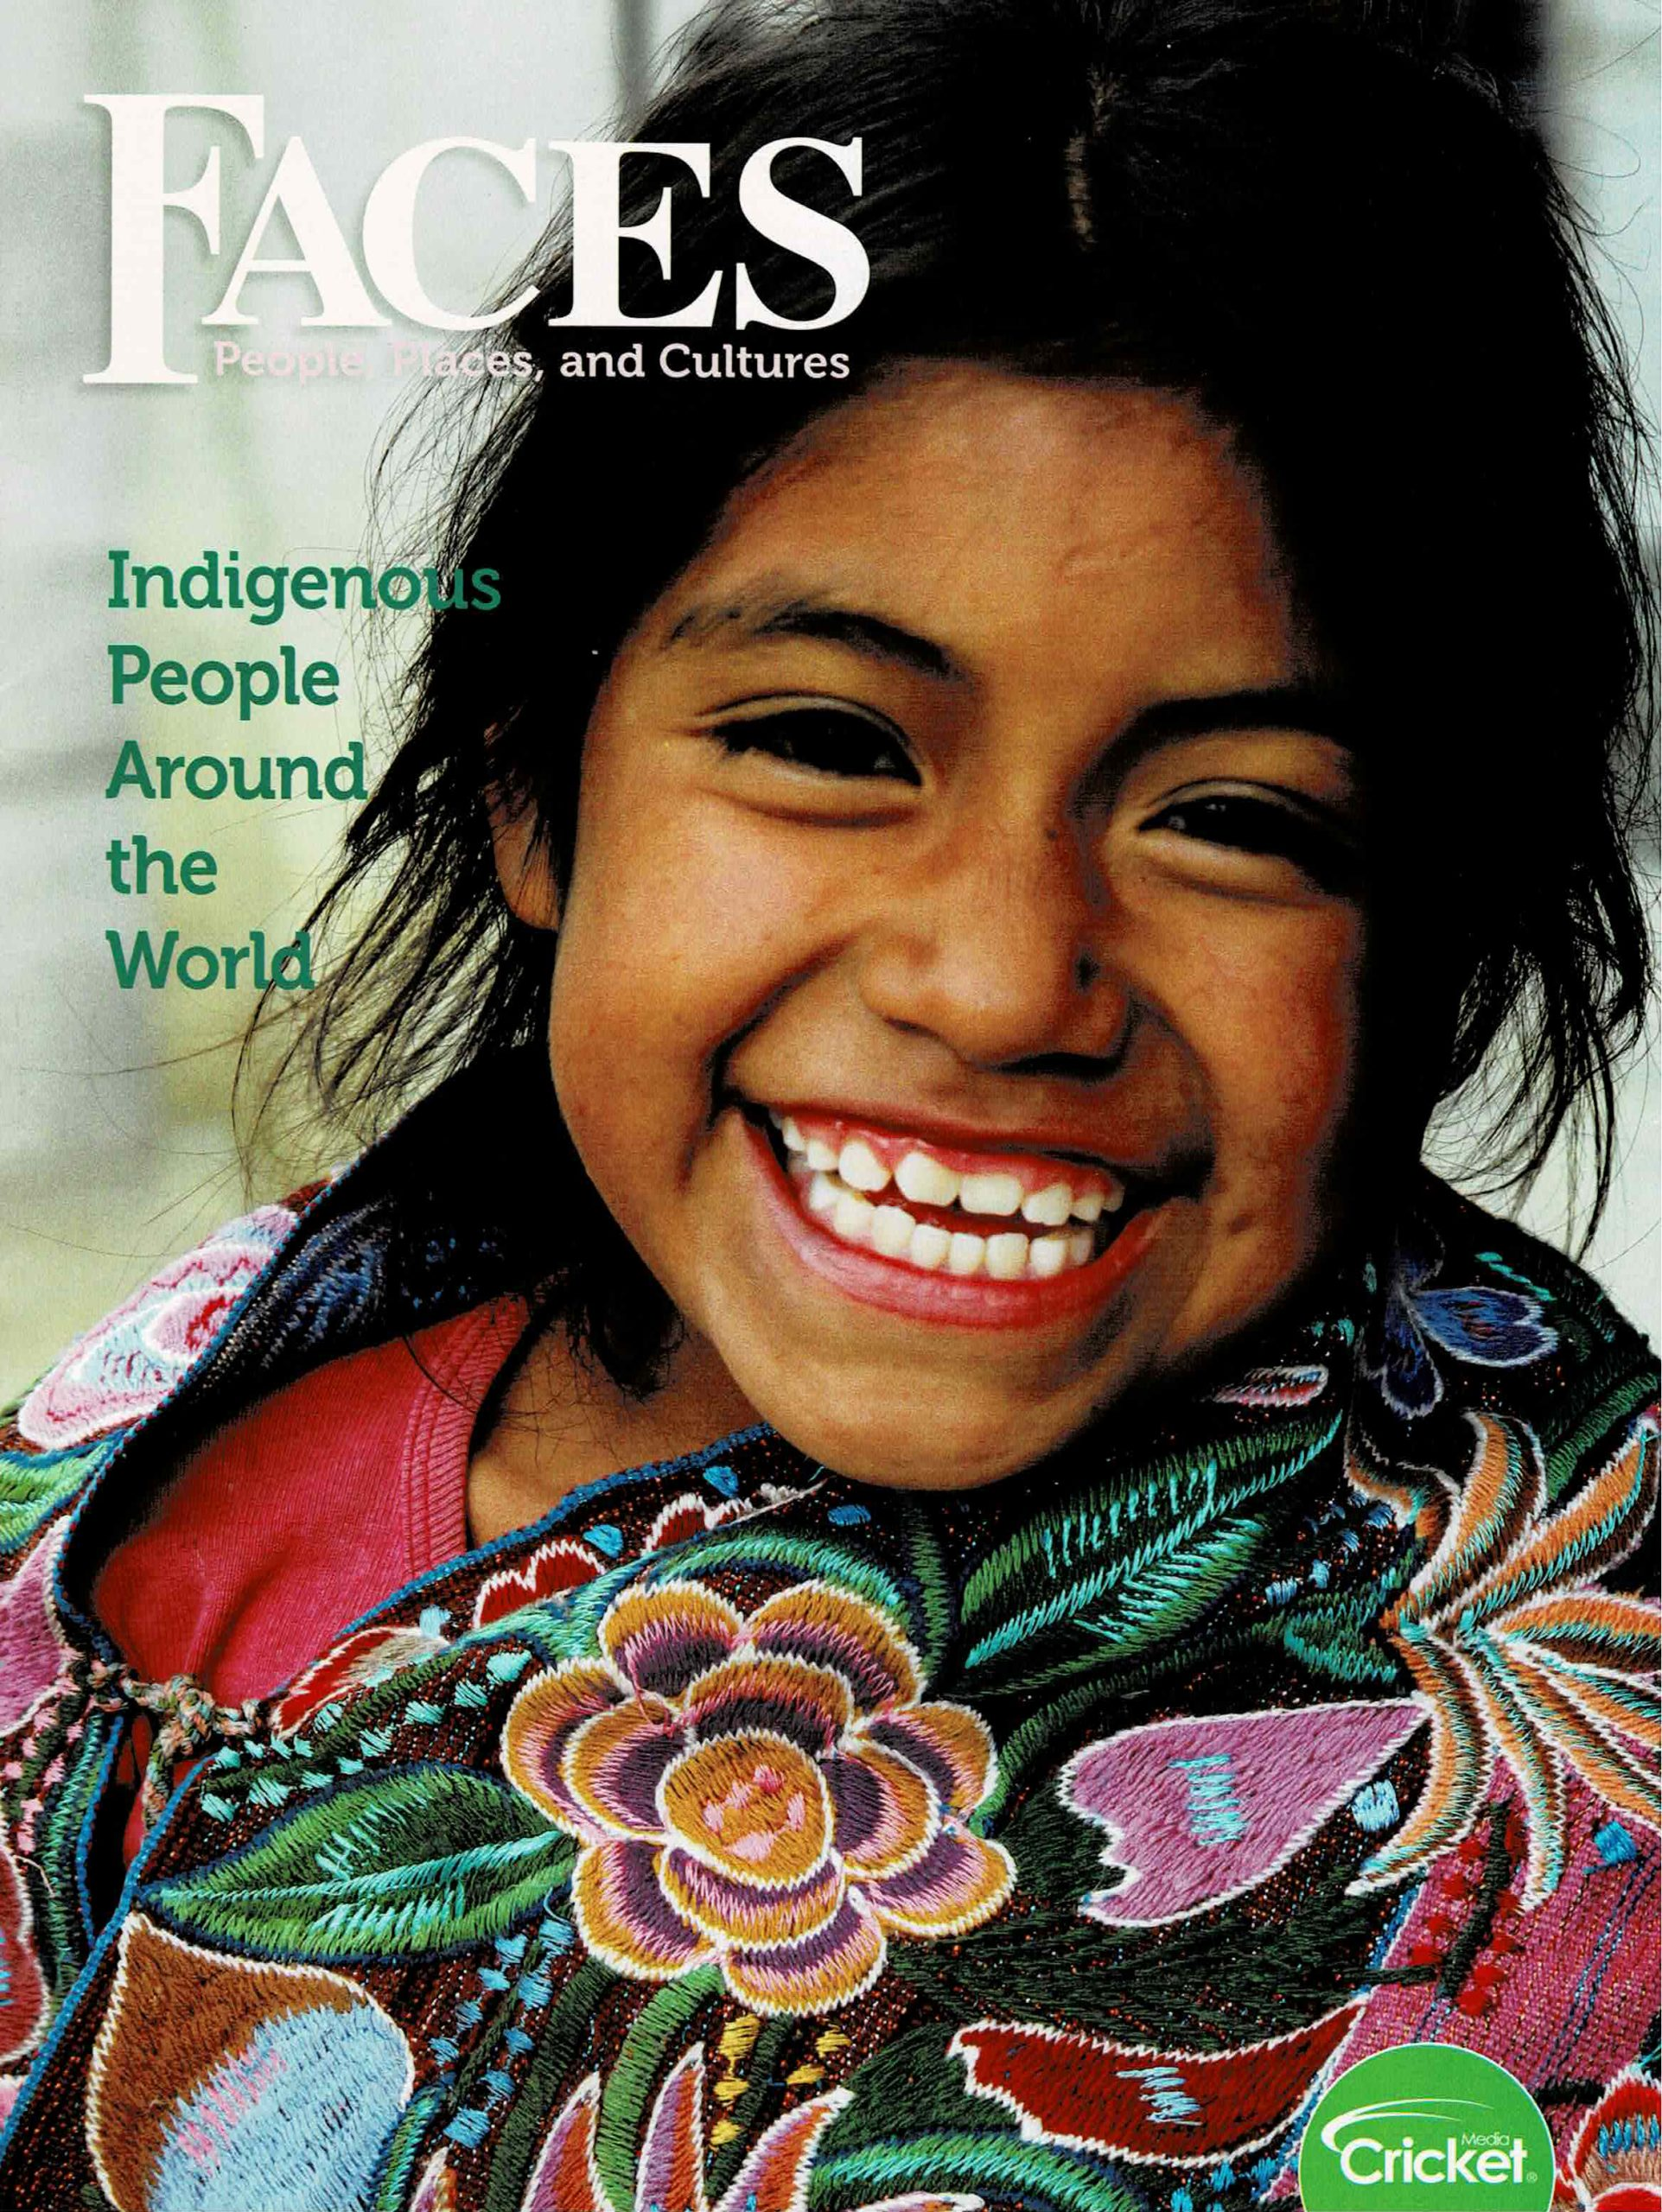 The Huli People Of Papua New Guinea: From Isolation To Theft Of Their Natural Resources